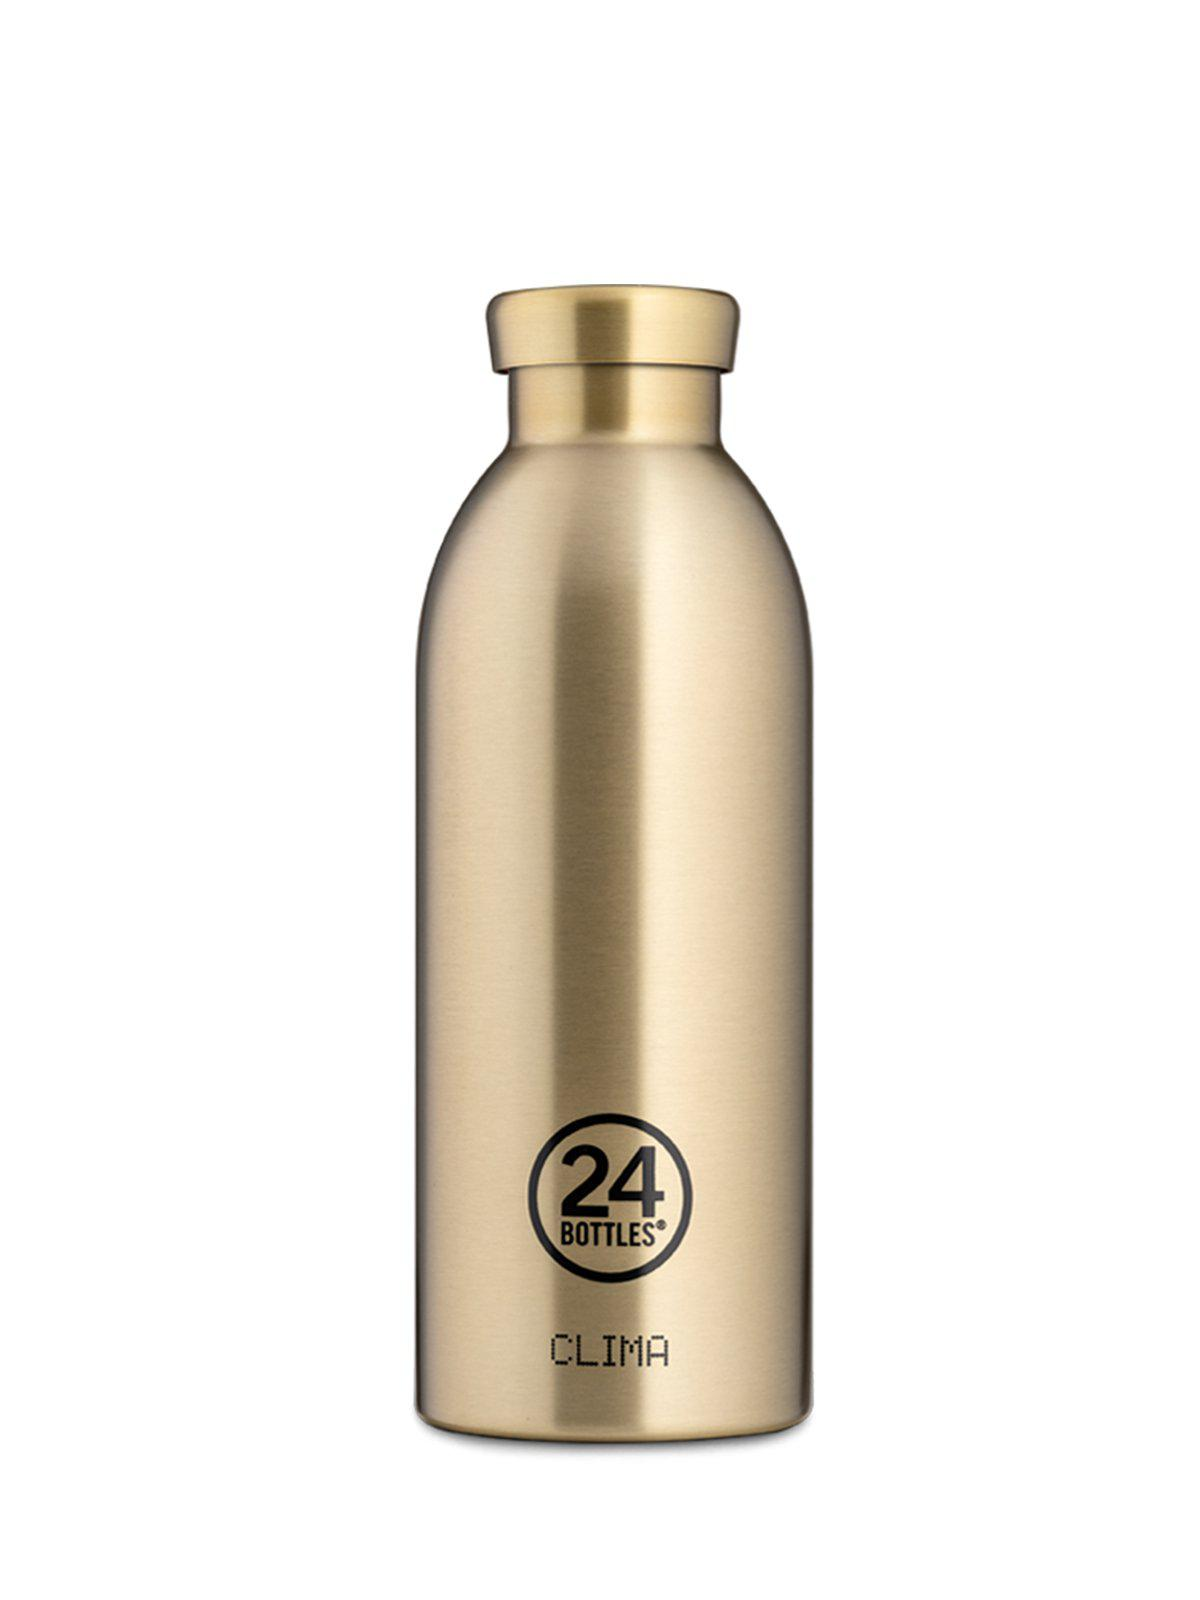 24Bottles Clima Bottle Prosecco Gold 500ml - MORE by Morello Indonesia